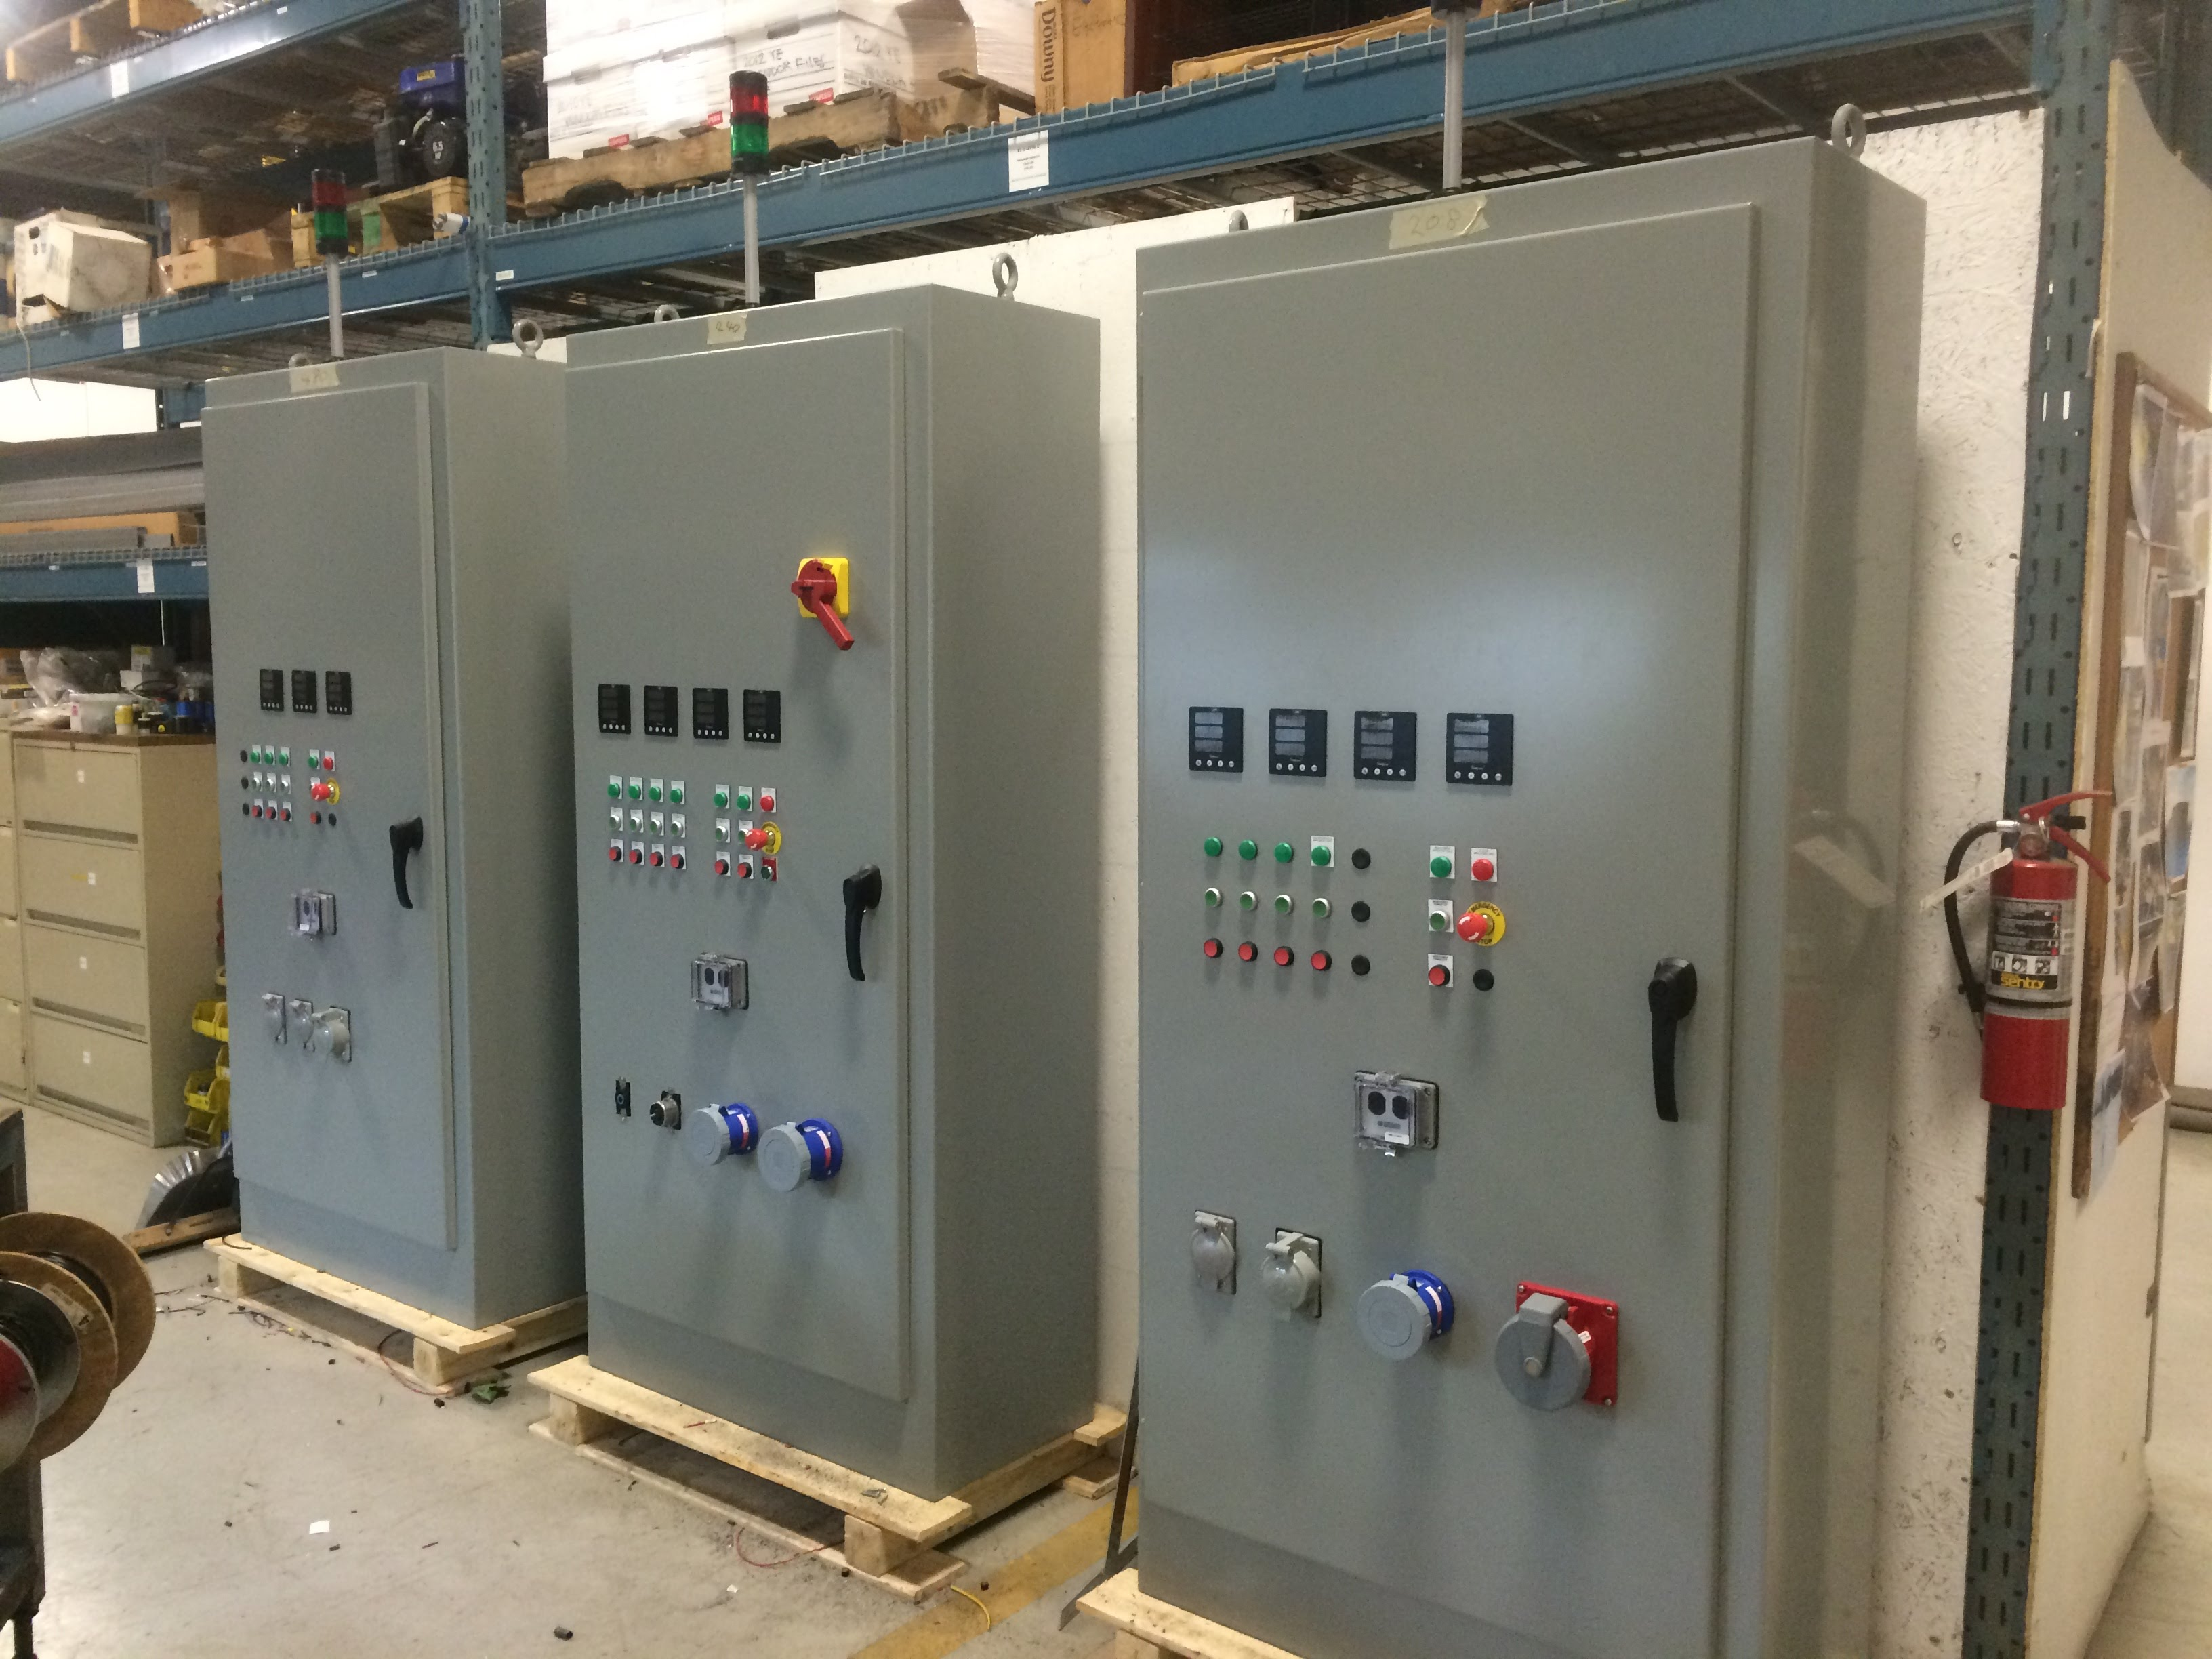 Comercial Oven Testing Panels.jpg